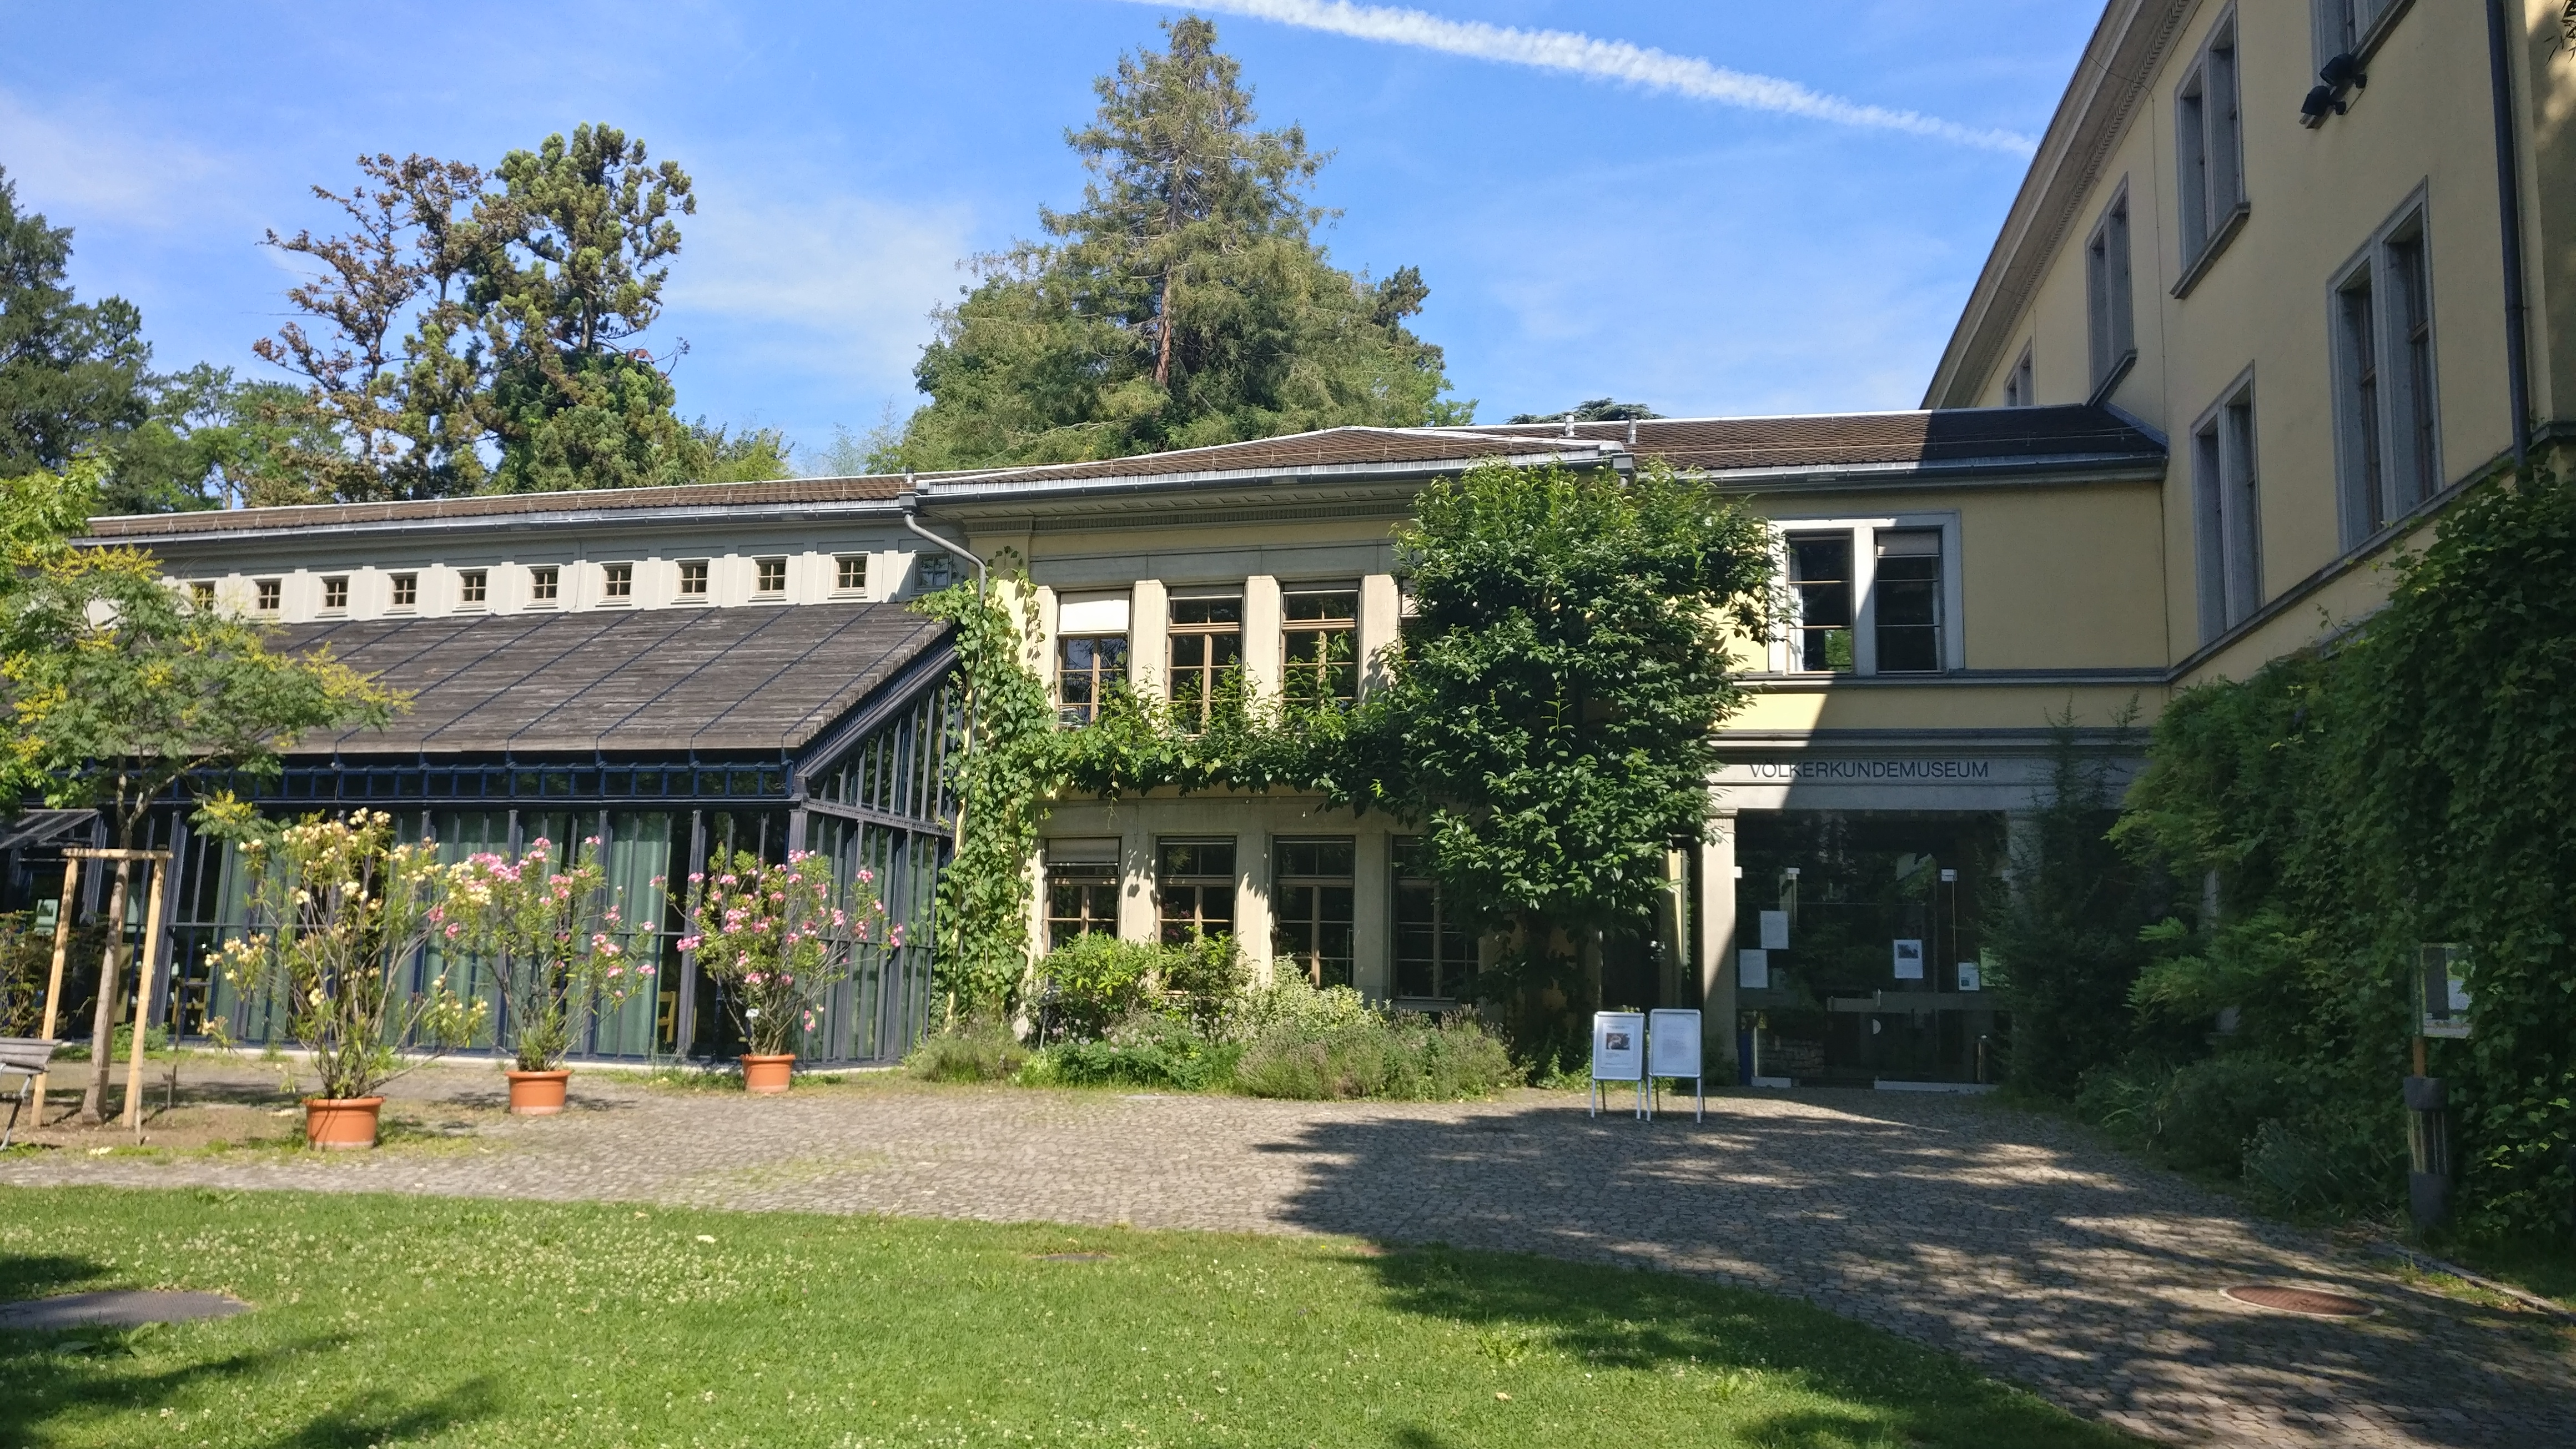 Ethnographic Museum at the University of Zurich